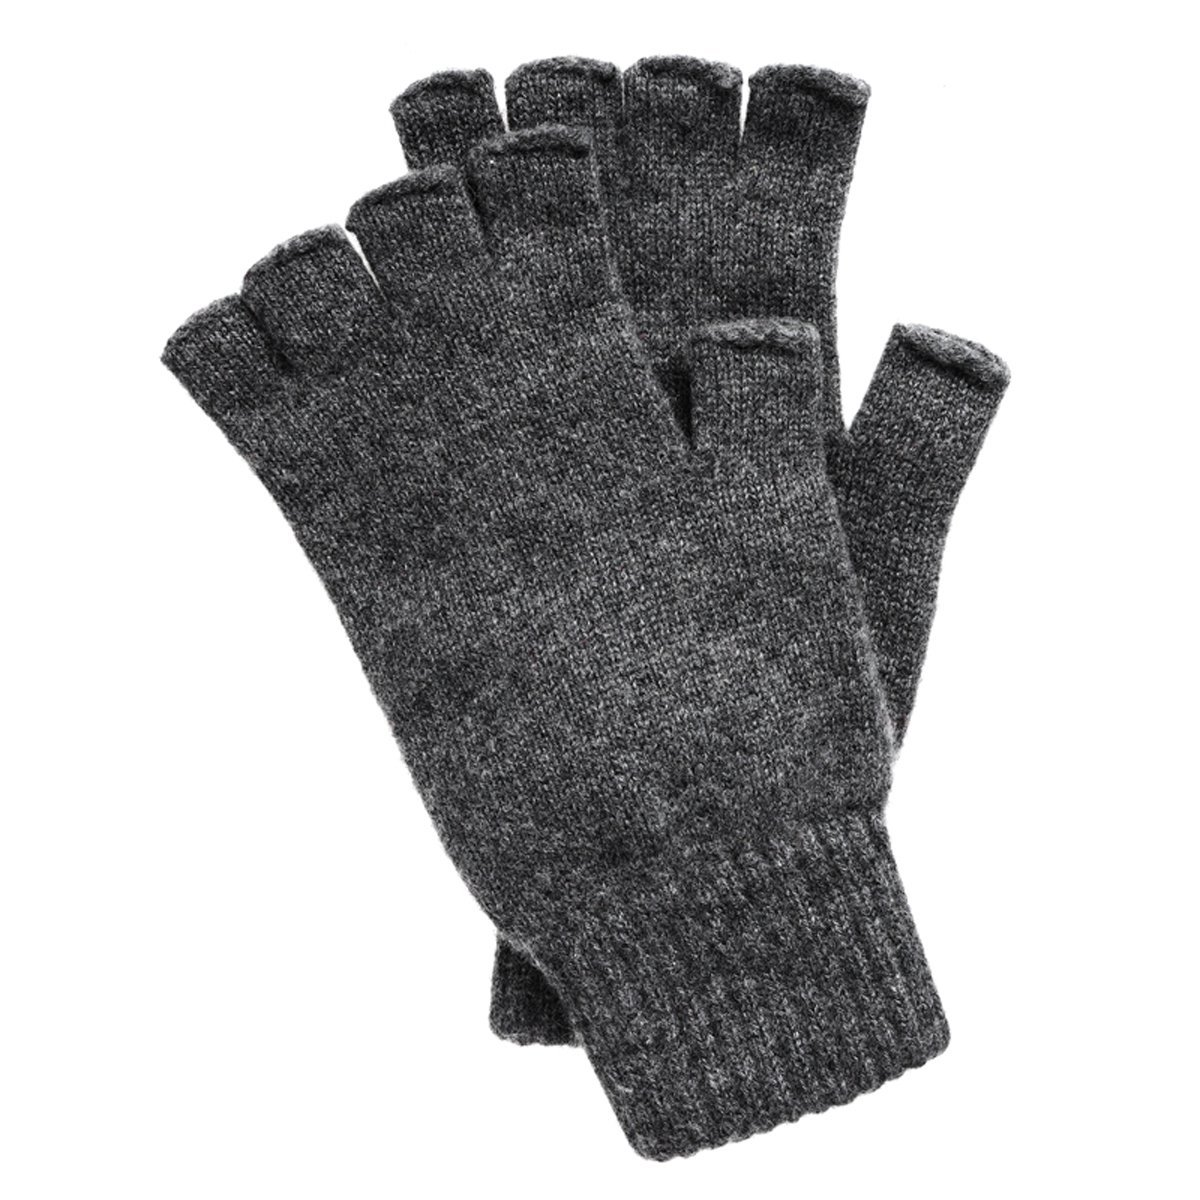 b161f0f0e21e1 Men's Fingerless Cashmere Gloves made in Scotland (Black) at Amazon Men's  Clothing store: Cold Weather Gloves